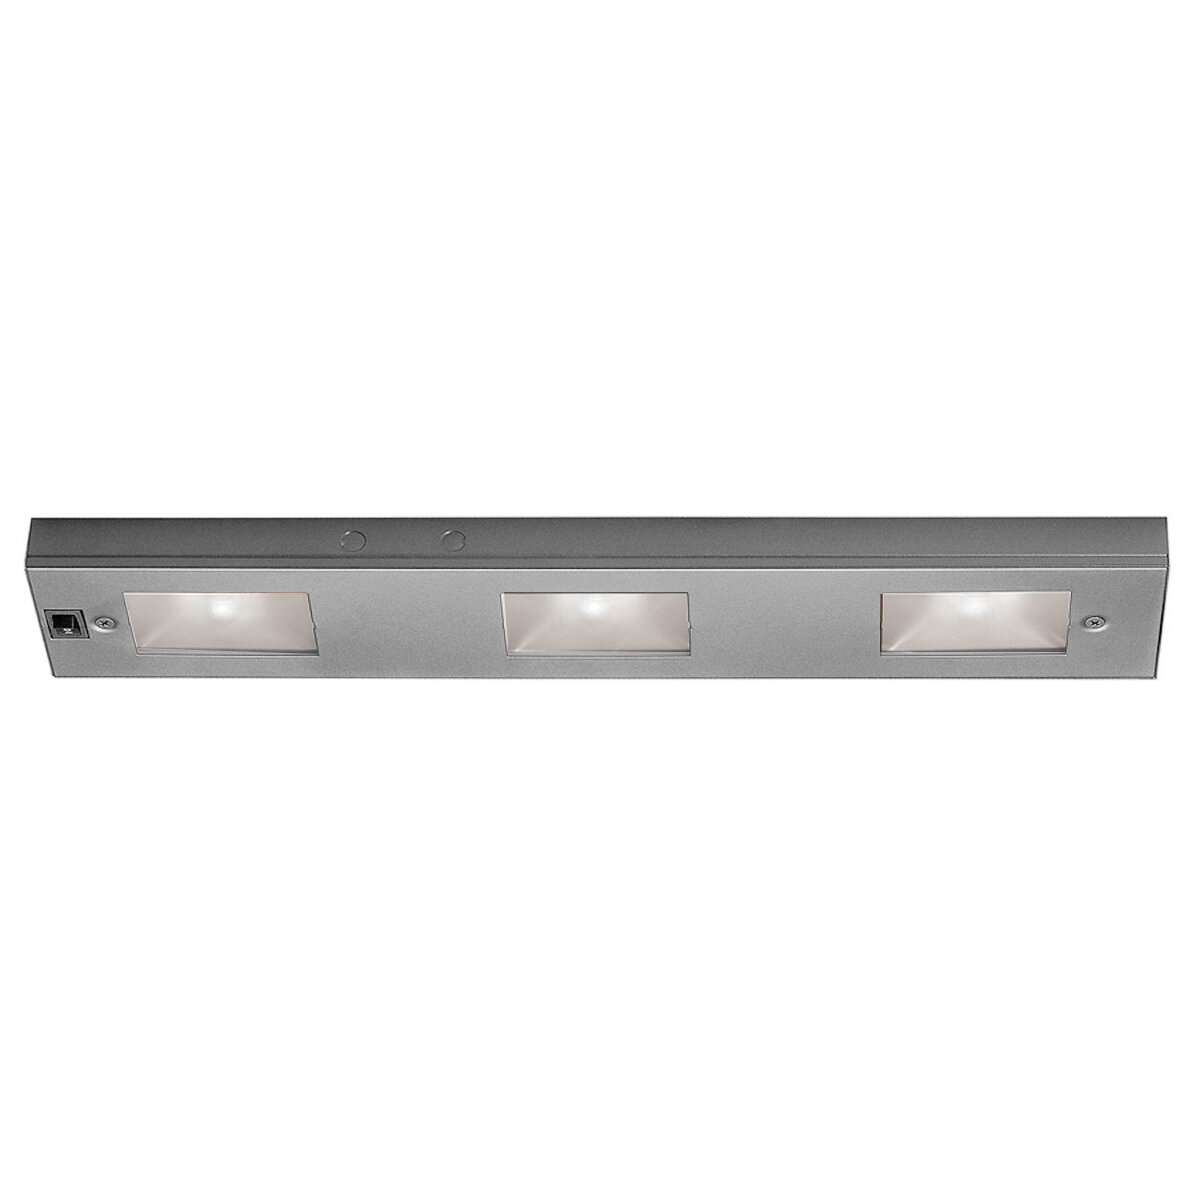 Xenon Under Cabinet Lighting Reviews Soul Speak Designs - Wac Led Under  Cabinet Lighting Reviews € - Xenon Under Cabinet Lighting Reviews Cymun Designs